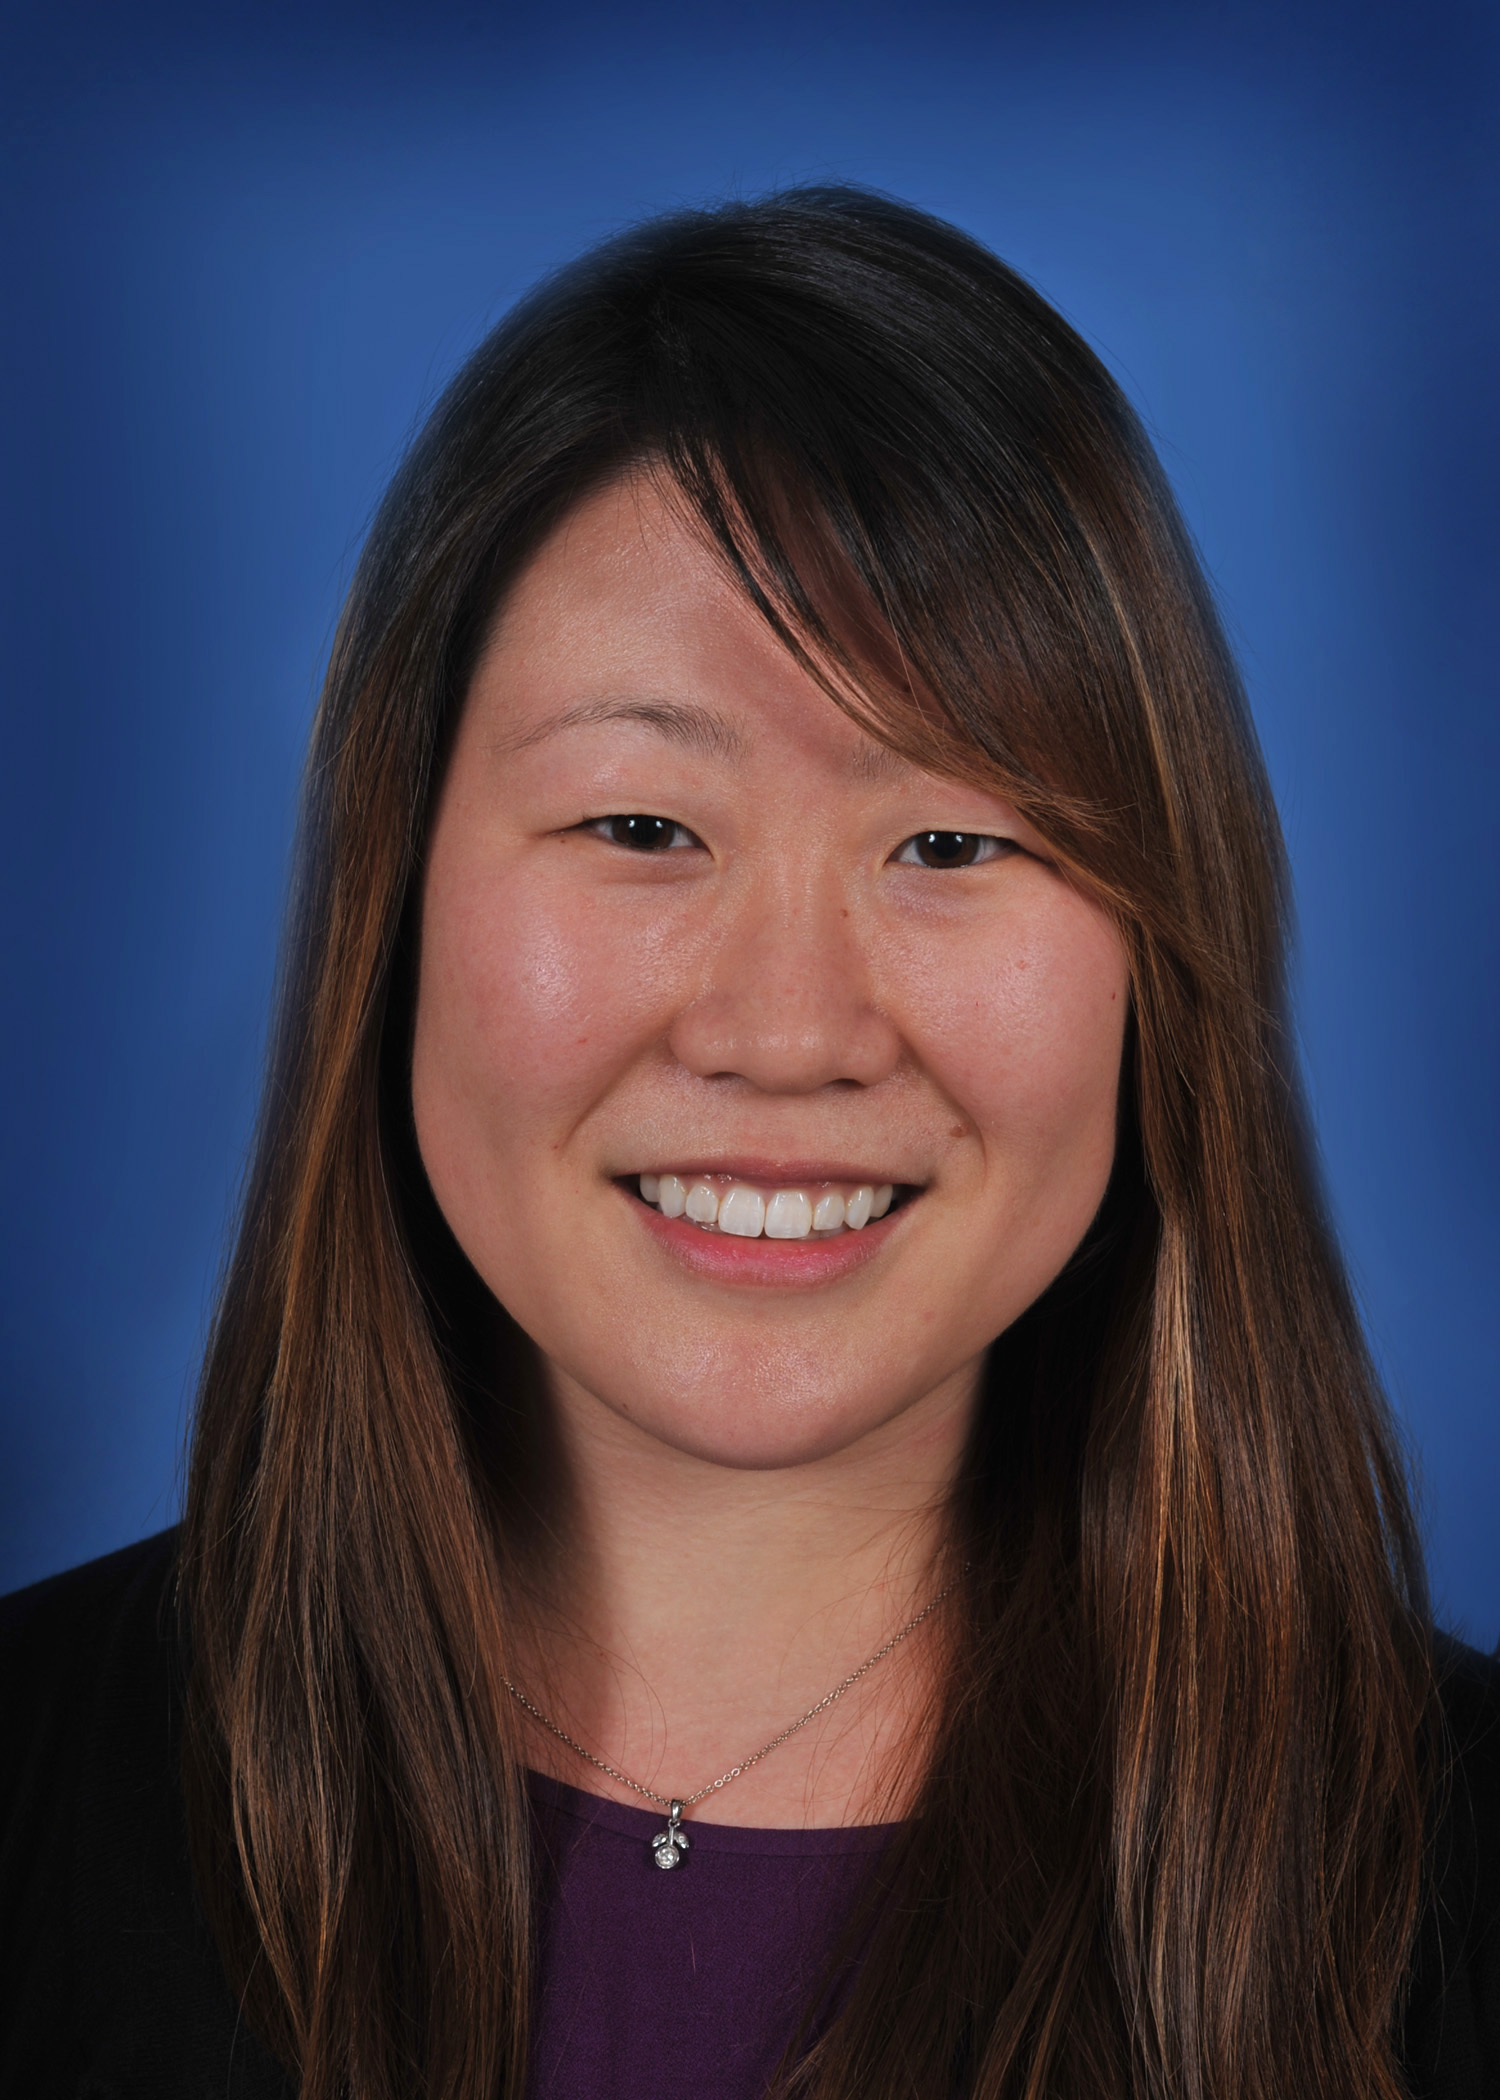 Christine Chang- UCLA Opearation Mend Clinical Specialist